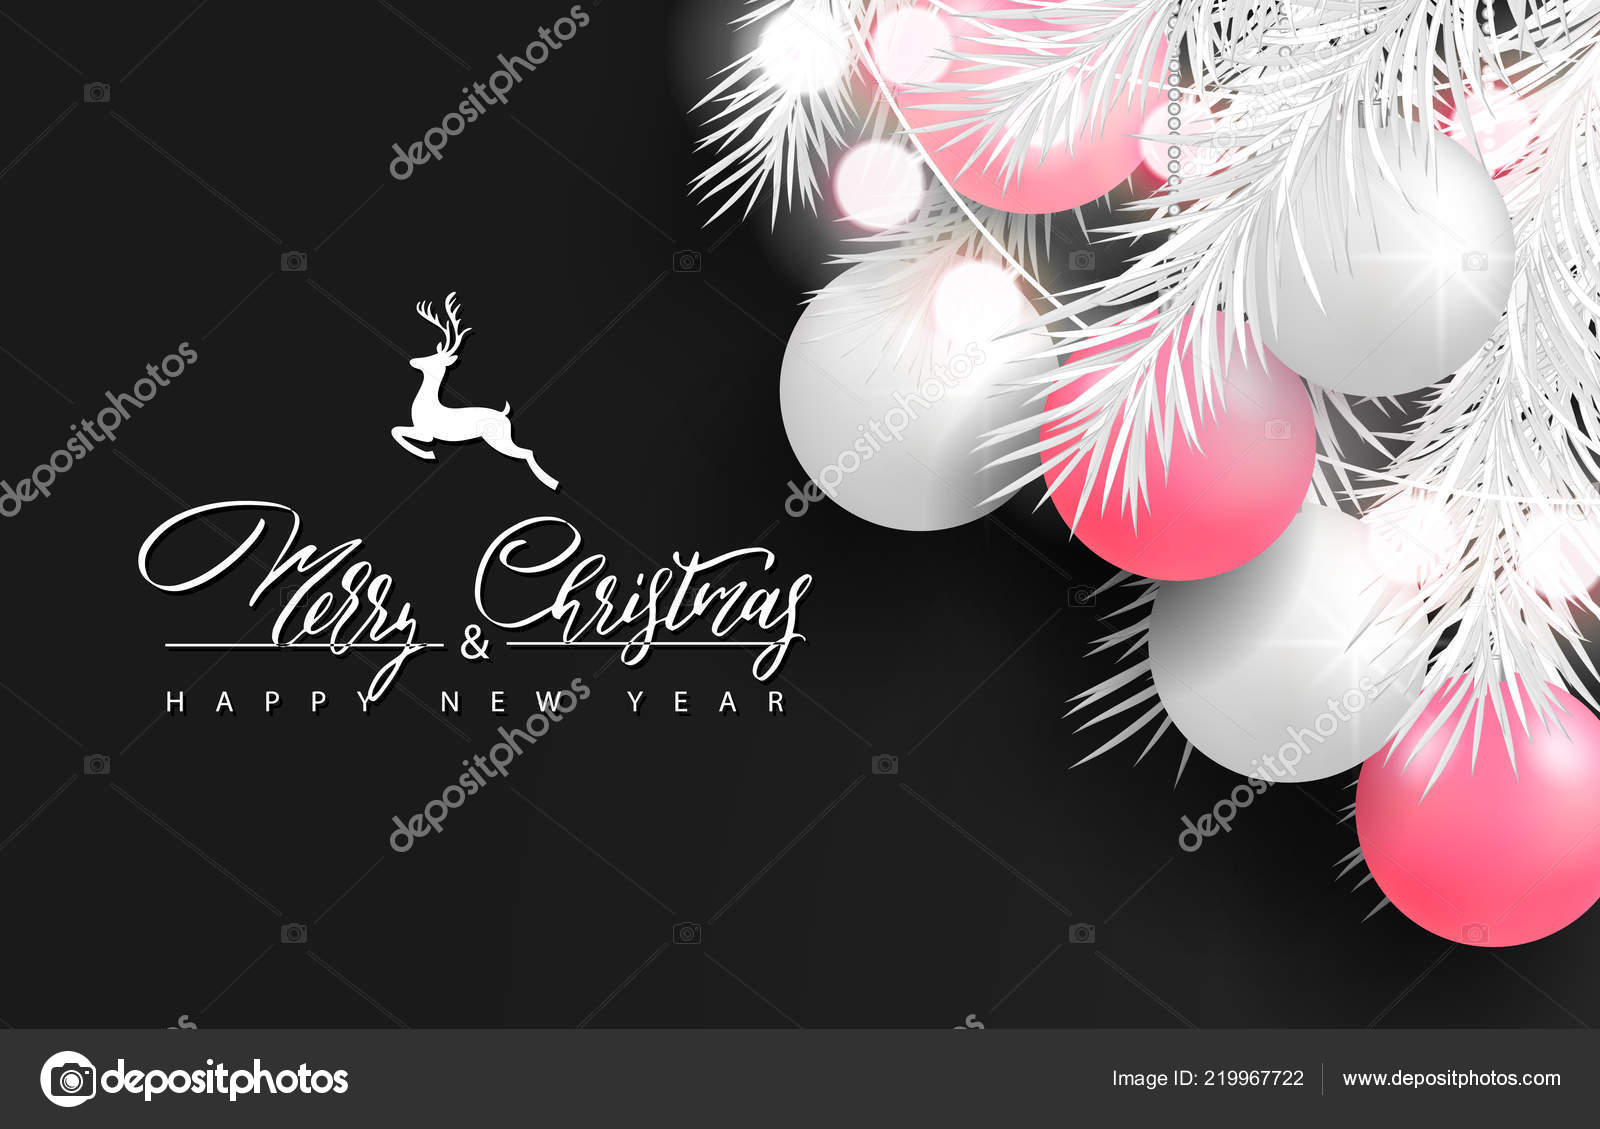 2019 merry christmas and happy new year background for holiday greeting card poster banner beautiful tree ballsgarlandwhite tree branches and lettering